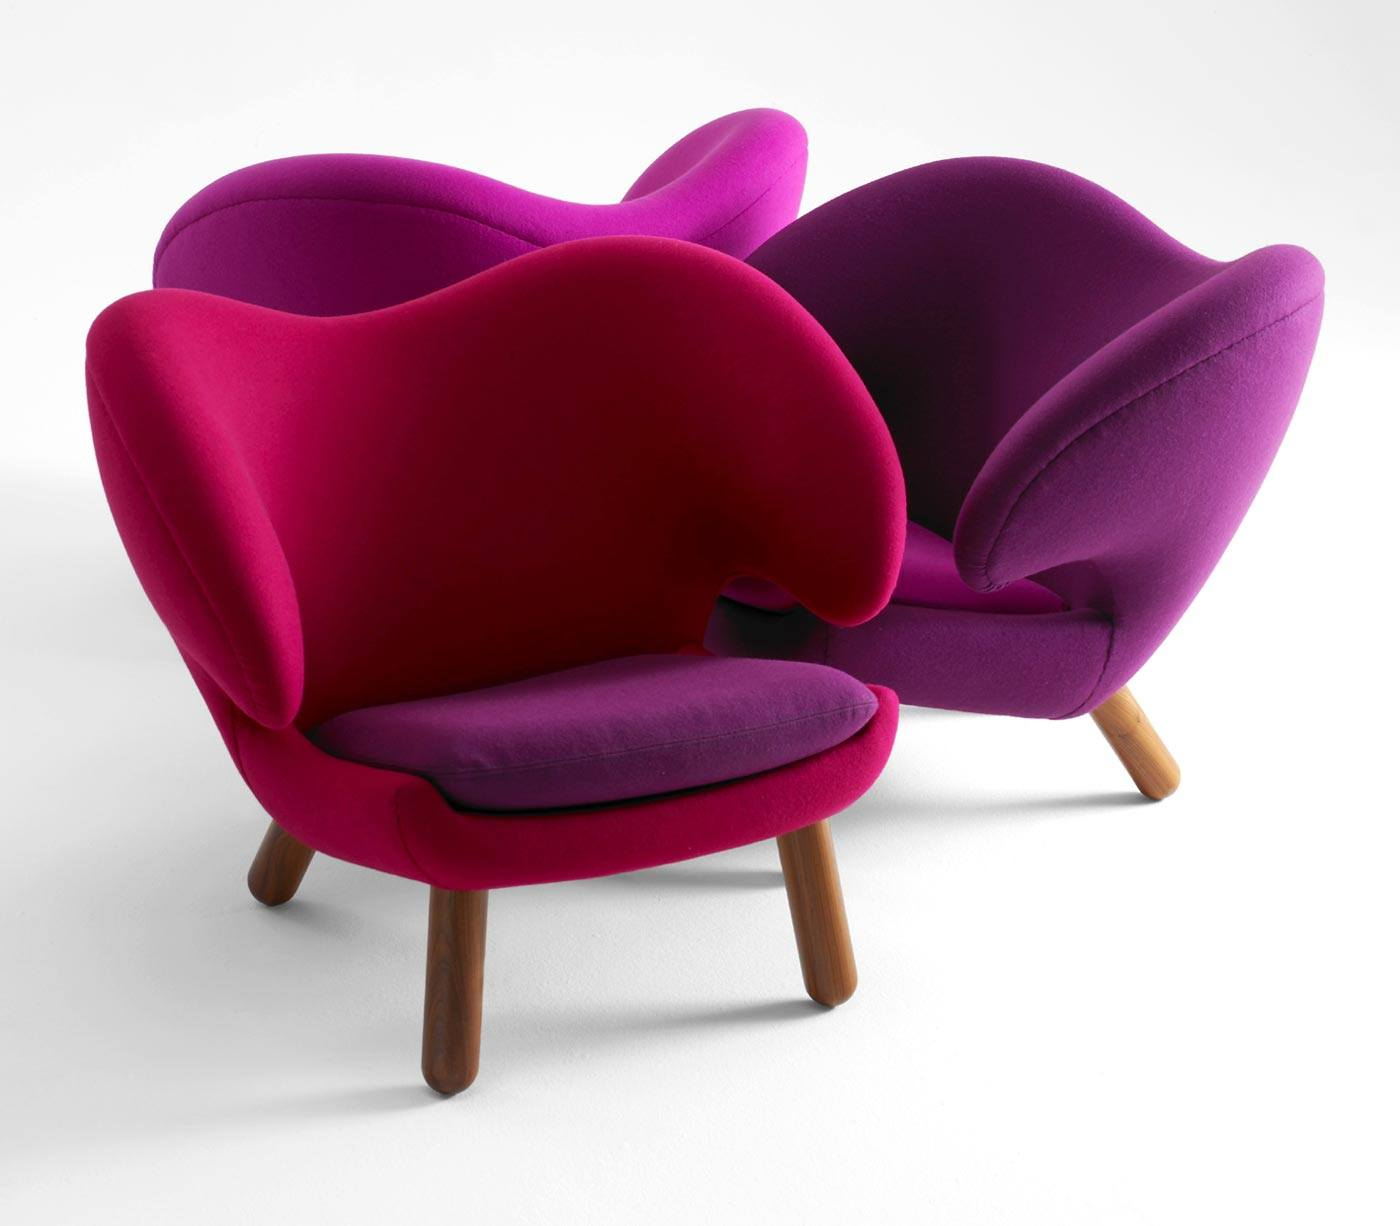 amazing chairs amazing latest trends furniture